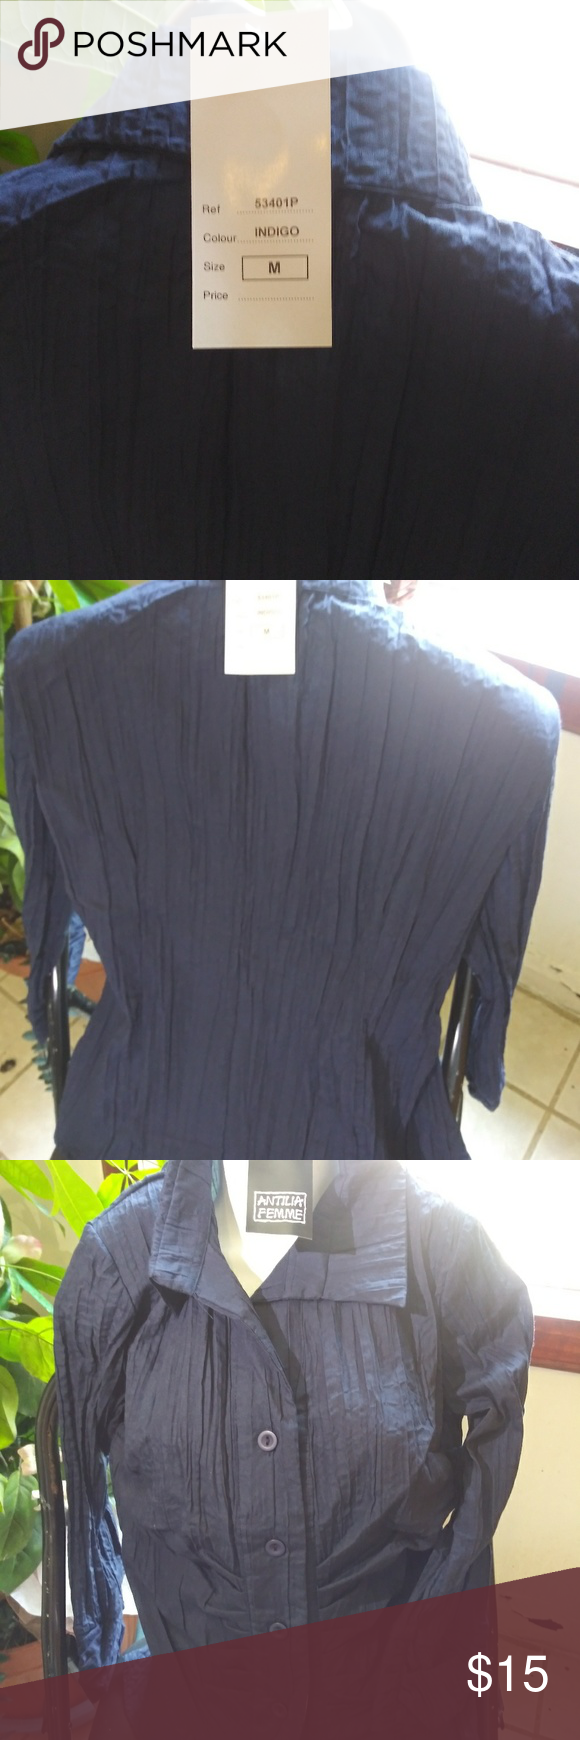 On Hold --Indigo Blue Pleated Blouse NWT Long sleeved pleated indigo deep blue ladies blouse with some stretch to it, perfect with summer whites, skirt, shorts, or white slacks. NWT Atillia Femme Other #whiteslacks